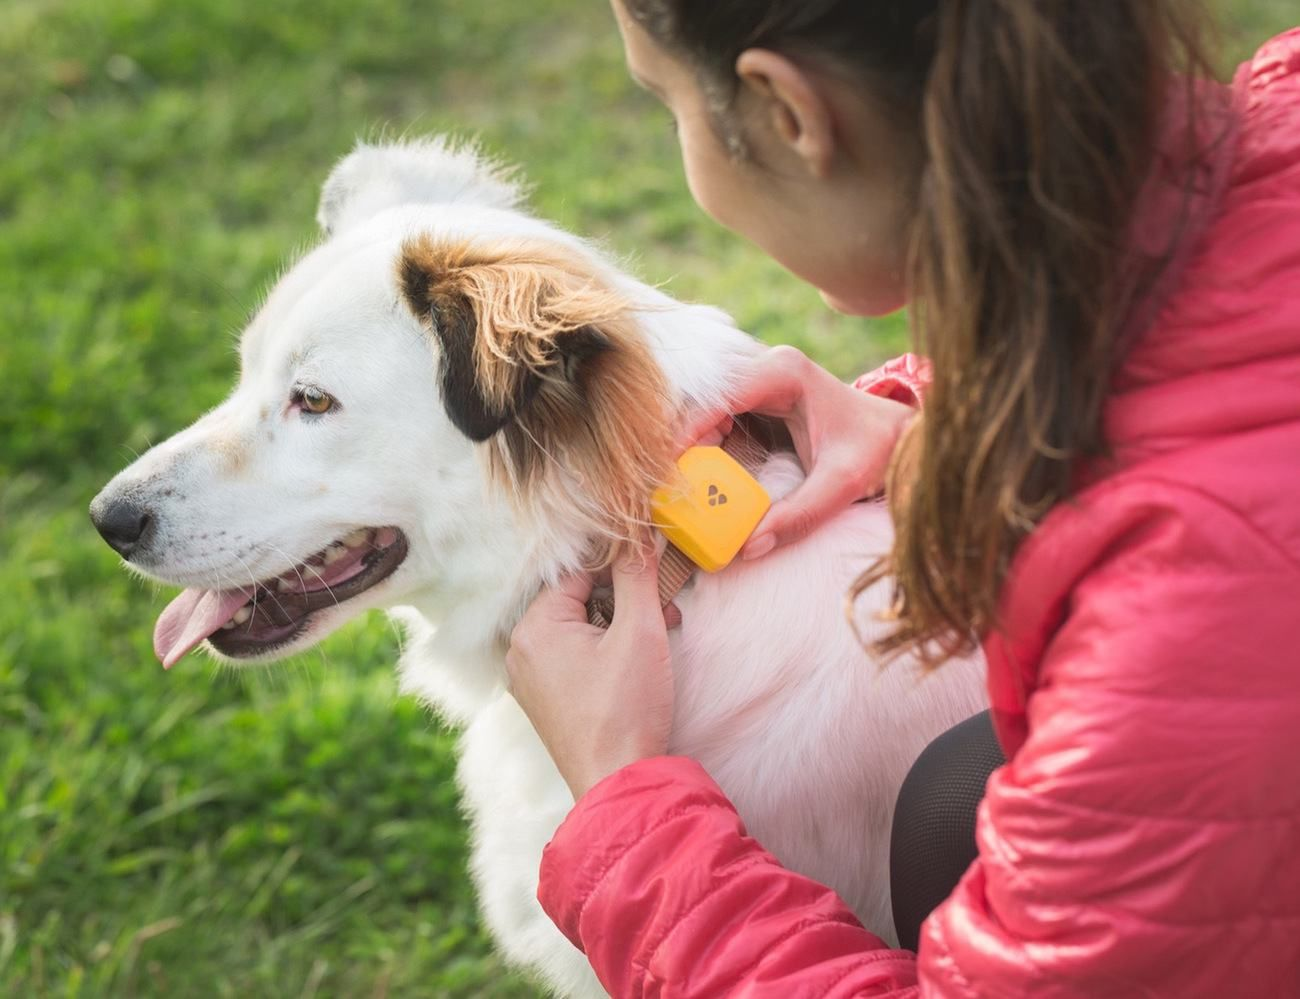 Findster Duo The 1st Gps Pet Tracker Free Of Monthly Fees Pet Tracker Best Gps Tracker Pet Gps